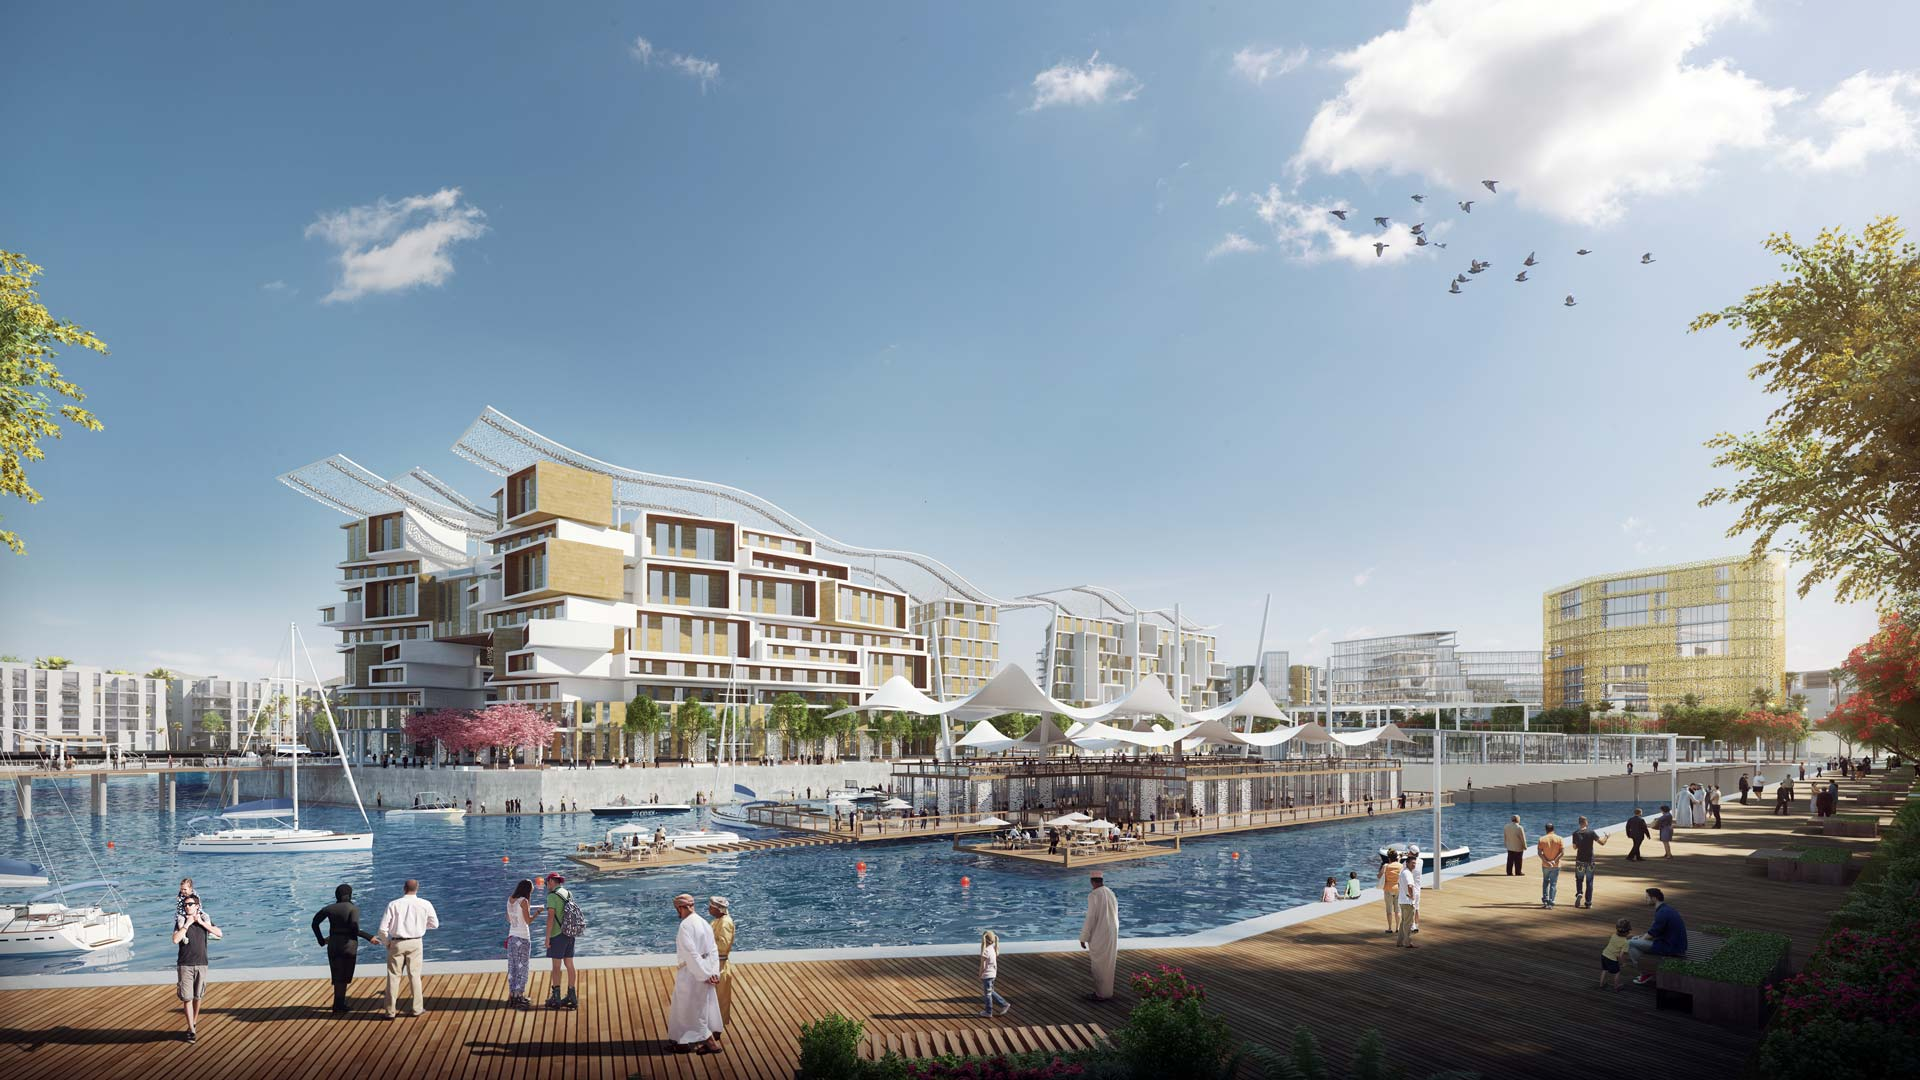 Image of the Sector JK Masterplan designed by Kettle Collective Architects